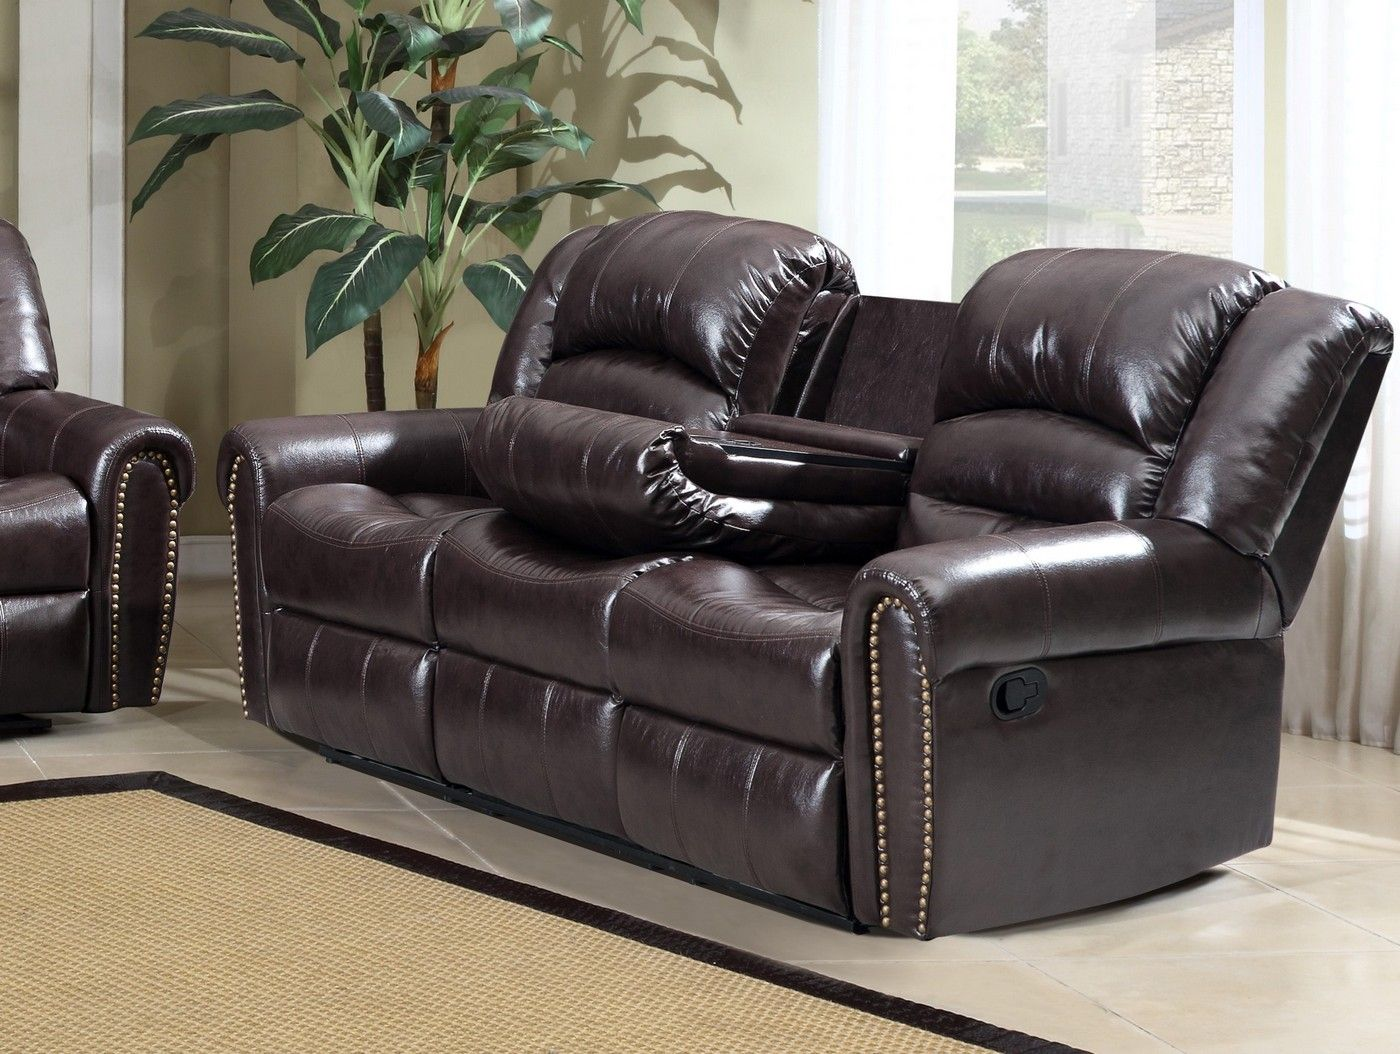 684 Brown Leather Reclining Sofa With Console And Nailhead Trim Leather Reclining Sofa Reclining Sofa Sofa Inspiration